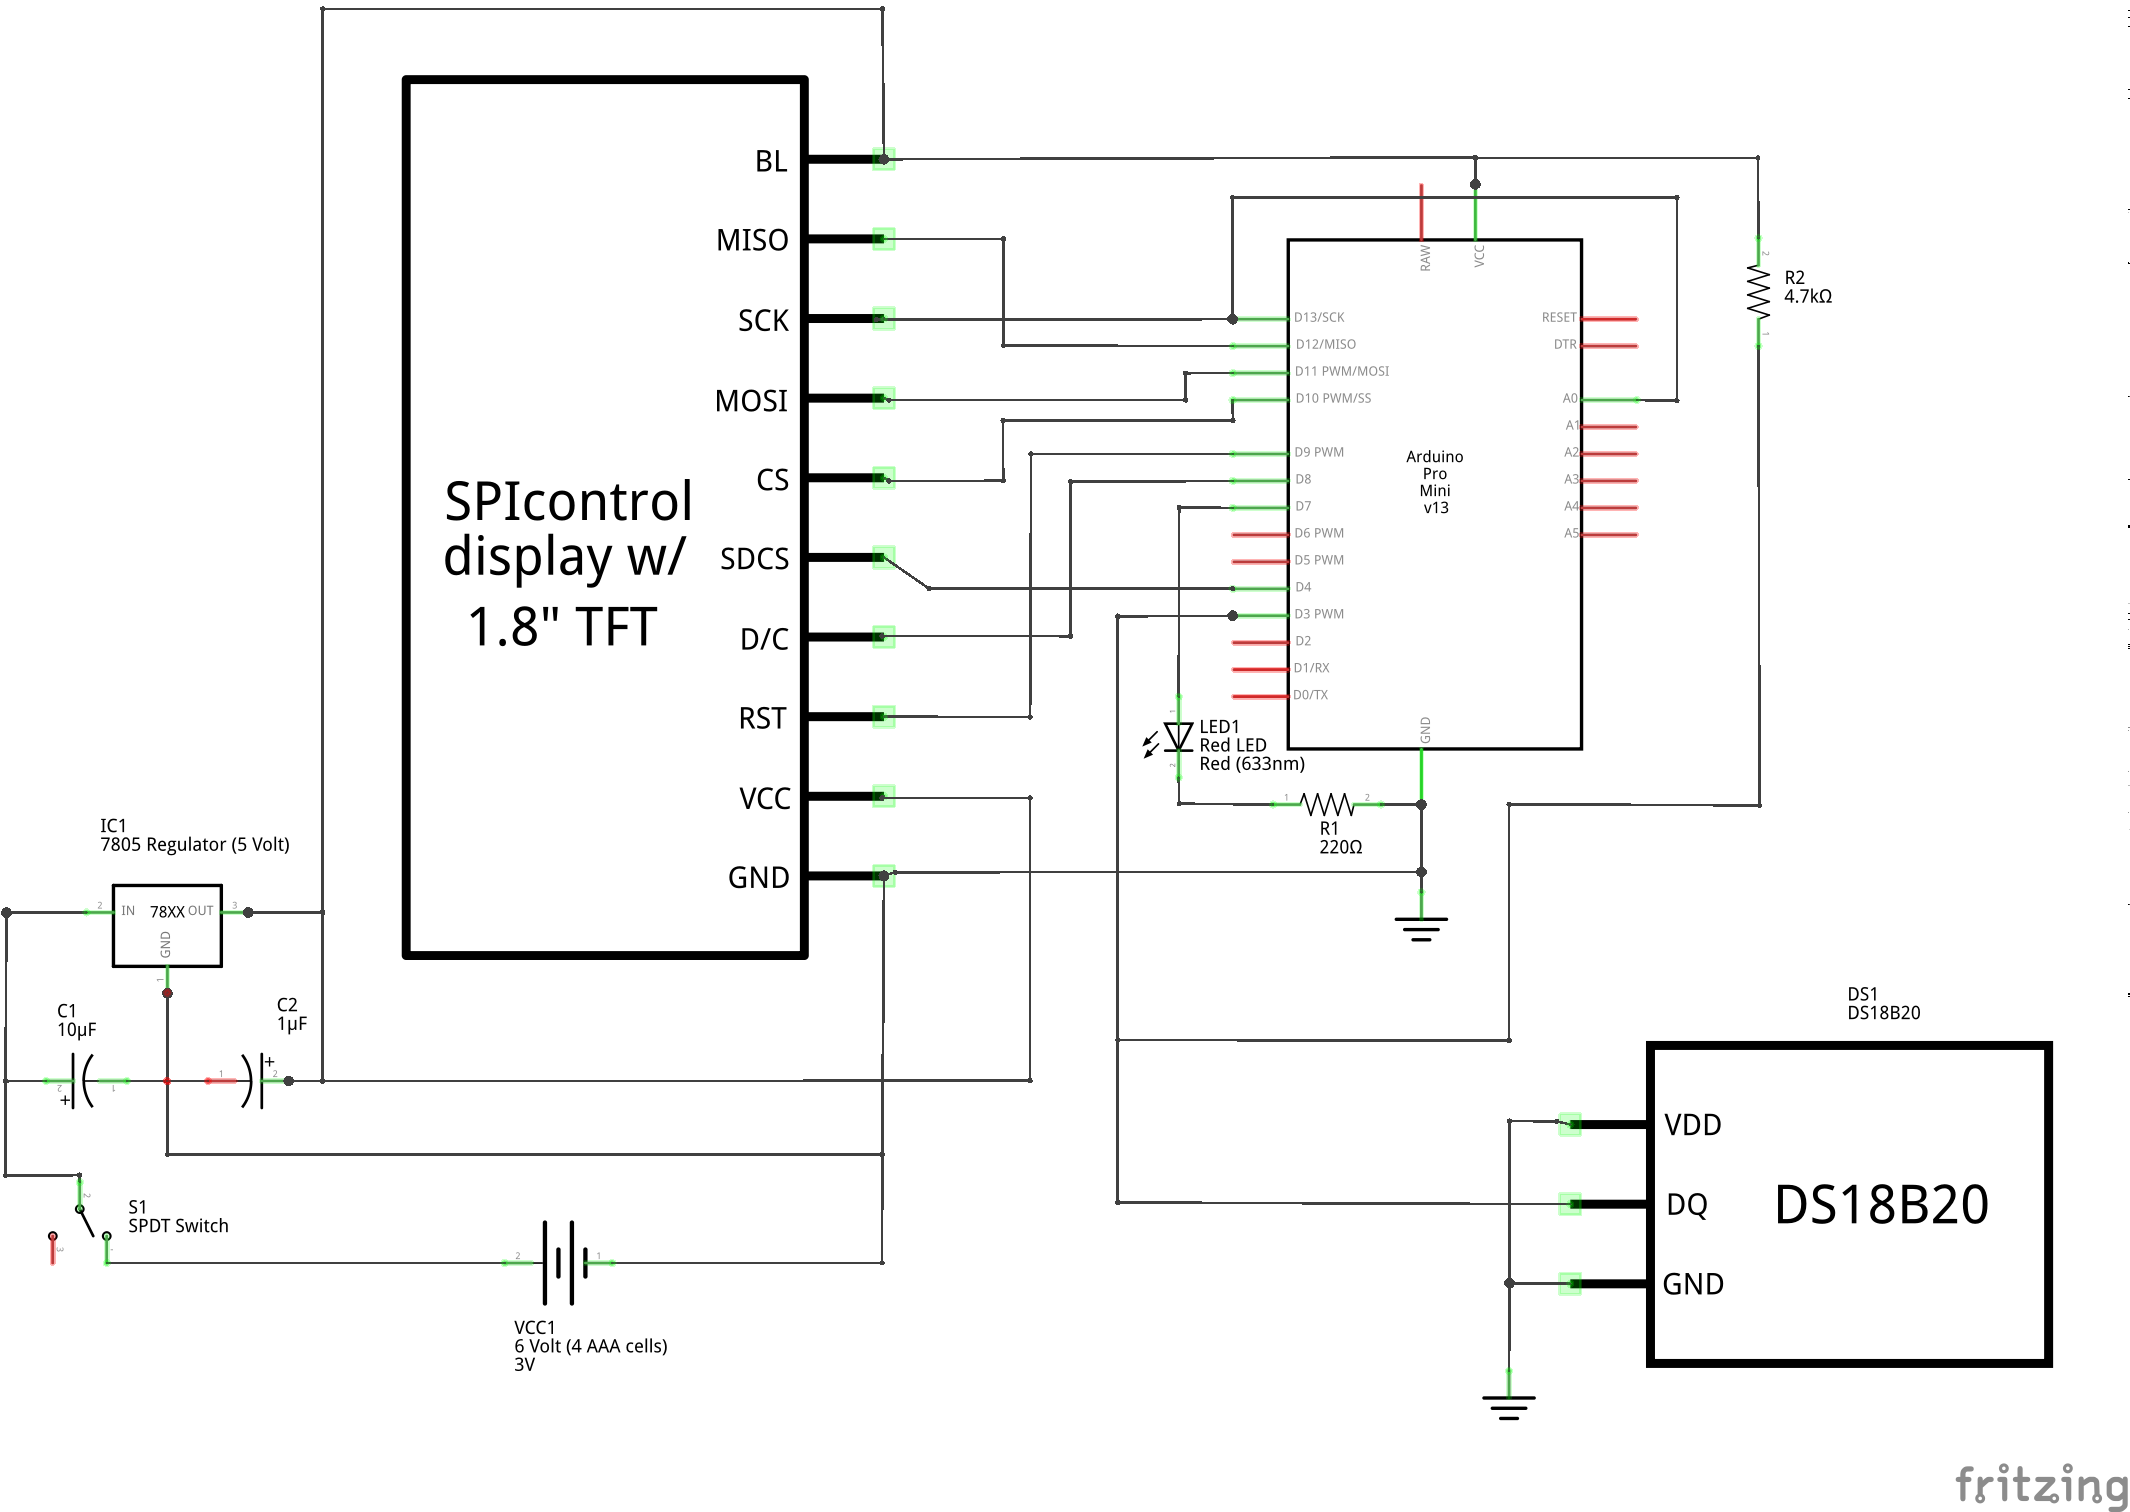 reading schematics wiring diagrams new how to read schematics diagram diagram wiringdiagram  new how to read schematics diagram